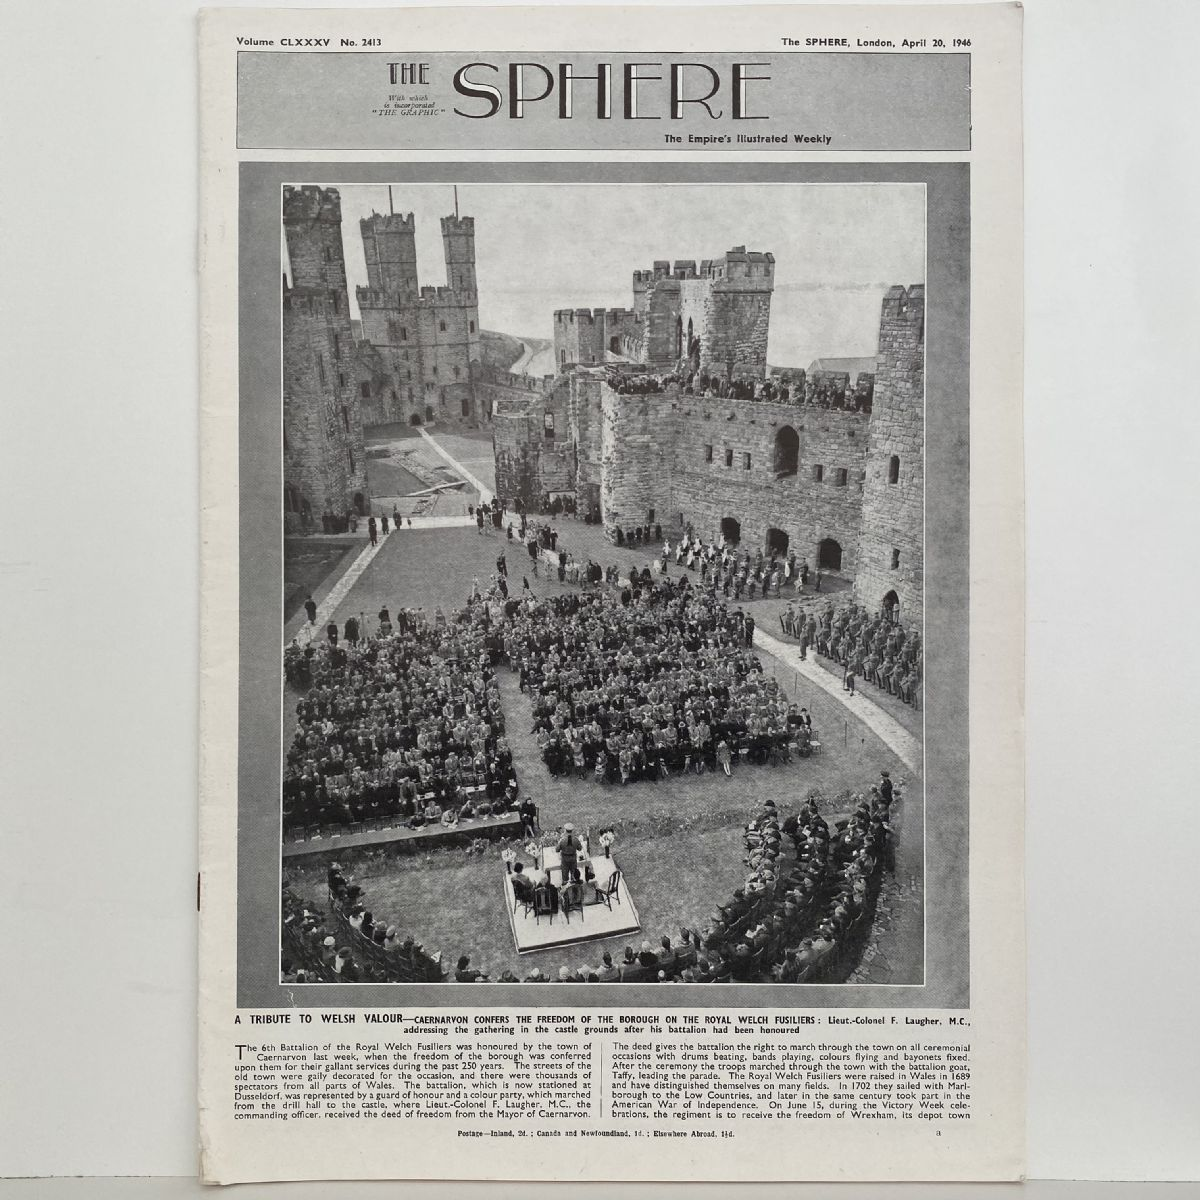 THE SPHERE The Empire's Illustrated Weekly. April 20, 1946. No. 2413